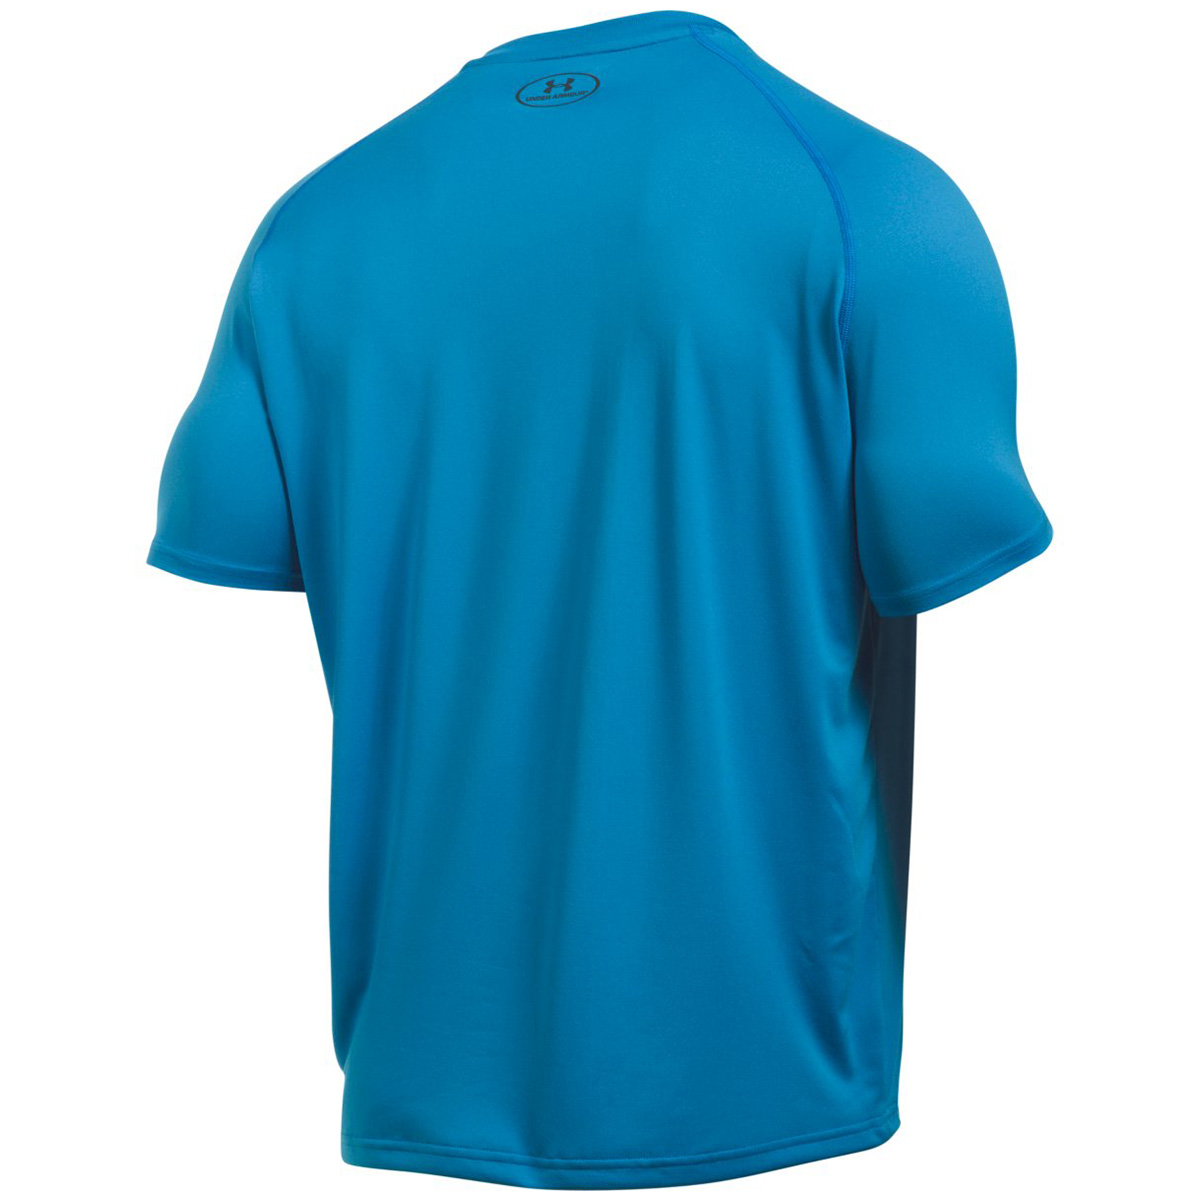 Under-Armour-Mens-UA-Tech-SS-T-Shirt-HeatGear-Training-31-OFF-RRP thumbnail 34